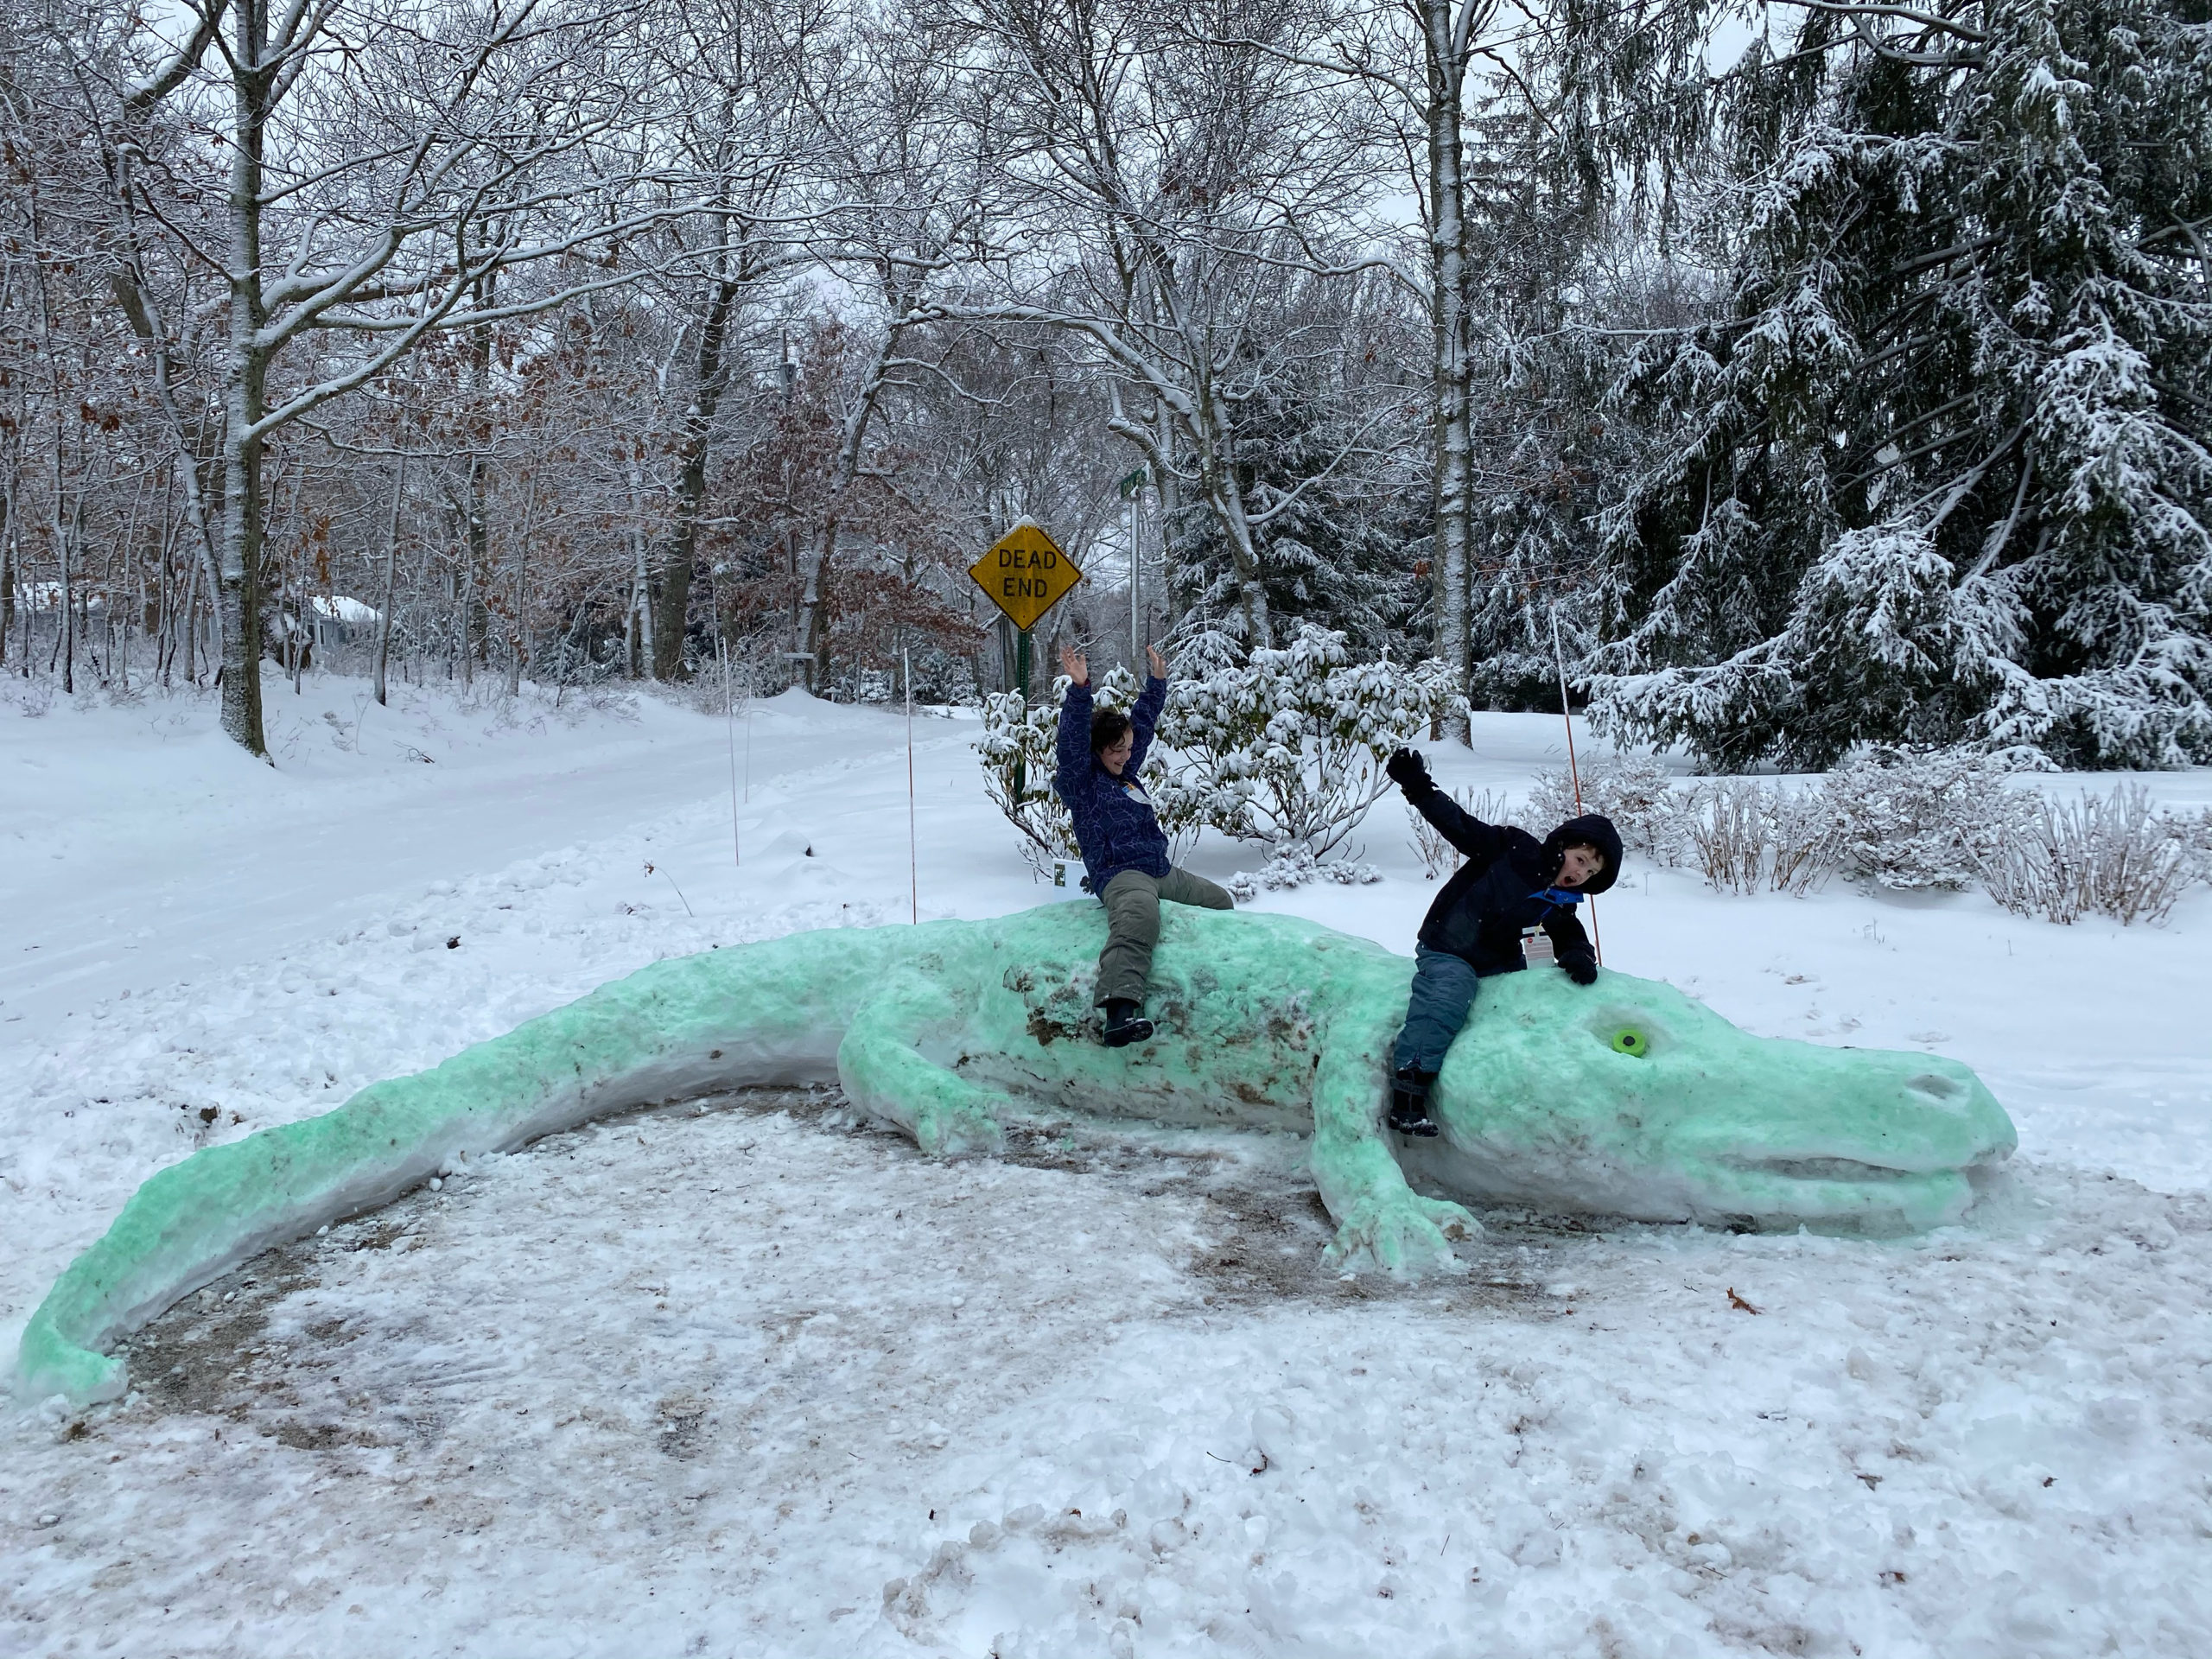 Isabella O'Leary, 9 and Desmond O'Leary, 6 of Southampton Shores with the snow alligator they created.    COURTESY MEREDITH O'LEARY